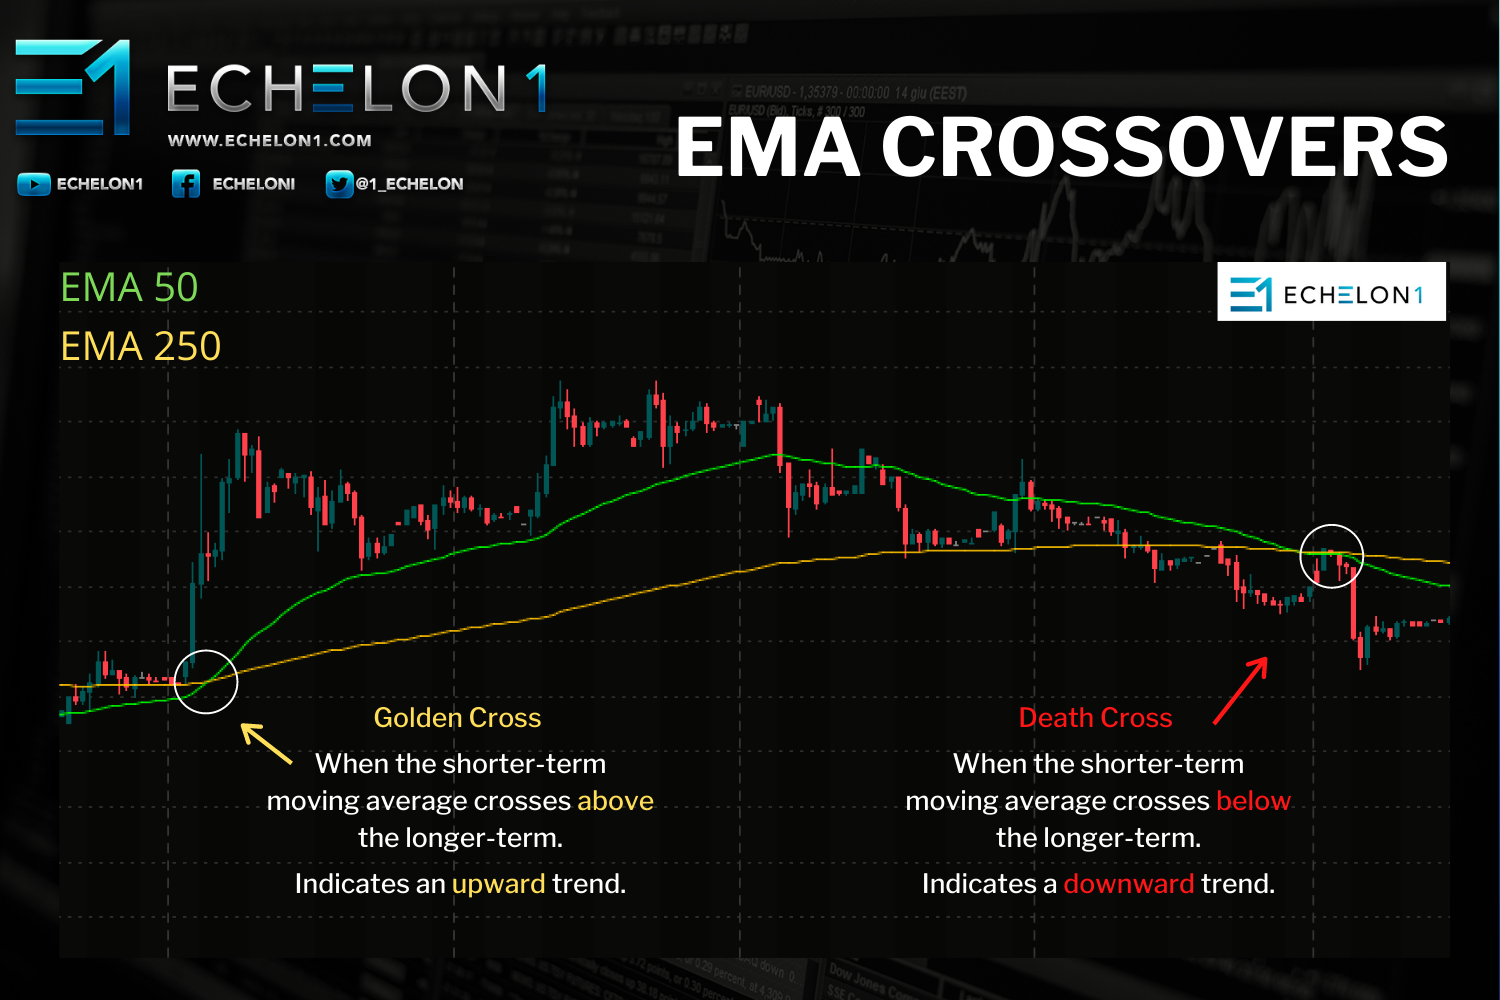 INFOGRAPHIC - EMA Crossovers - Moving Averages